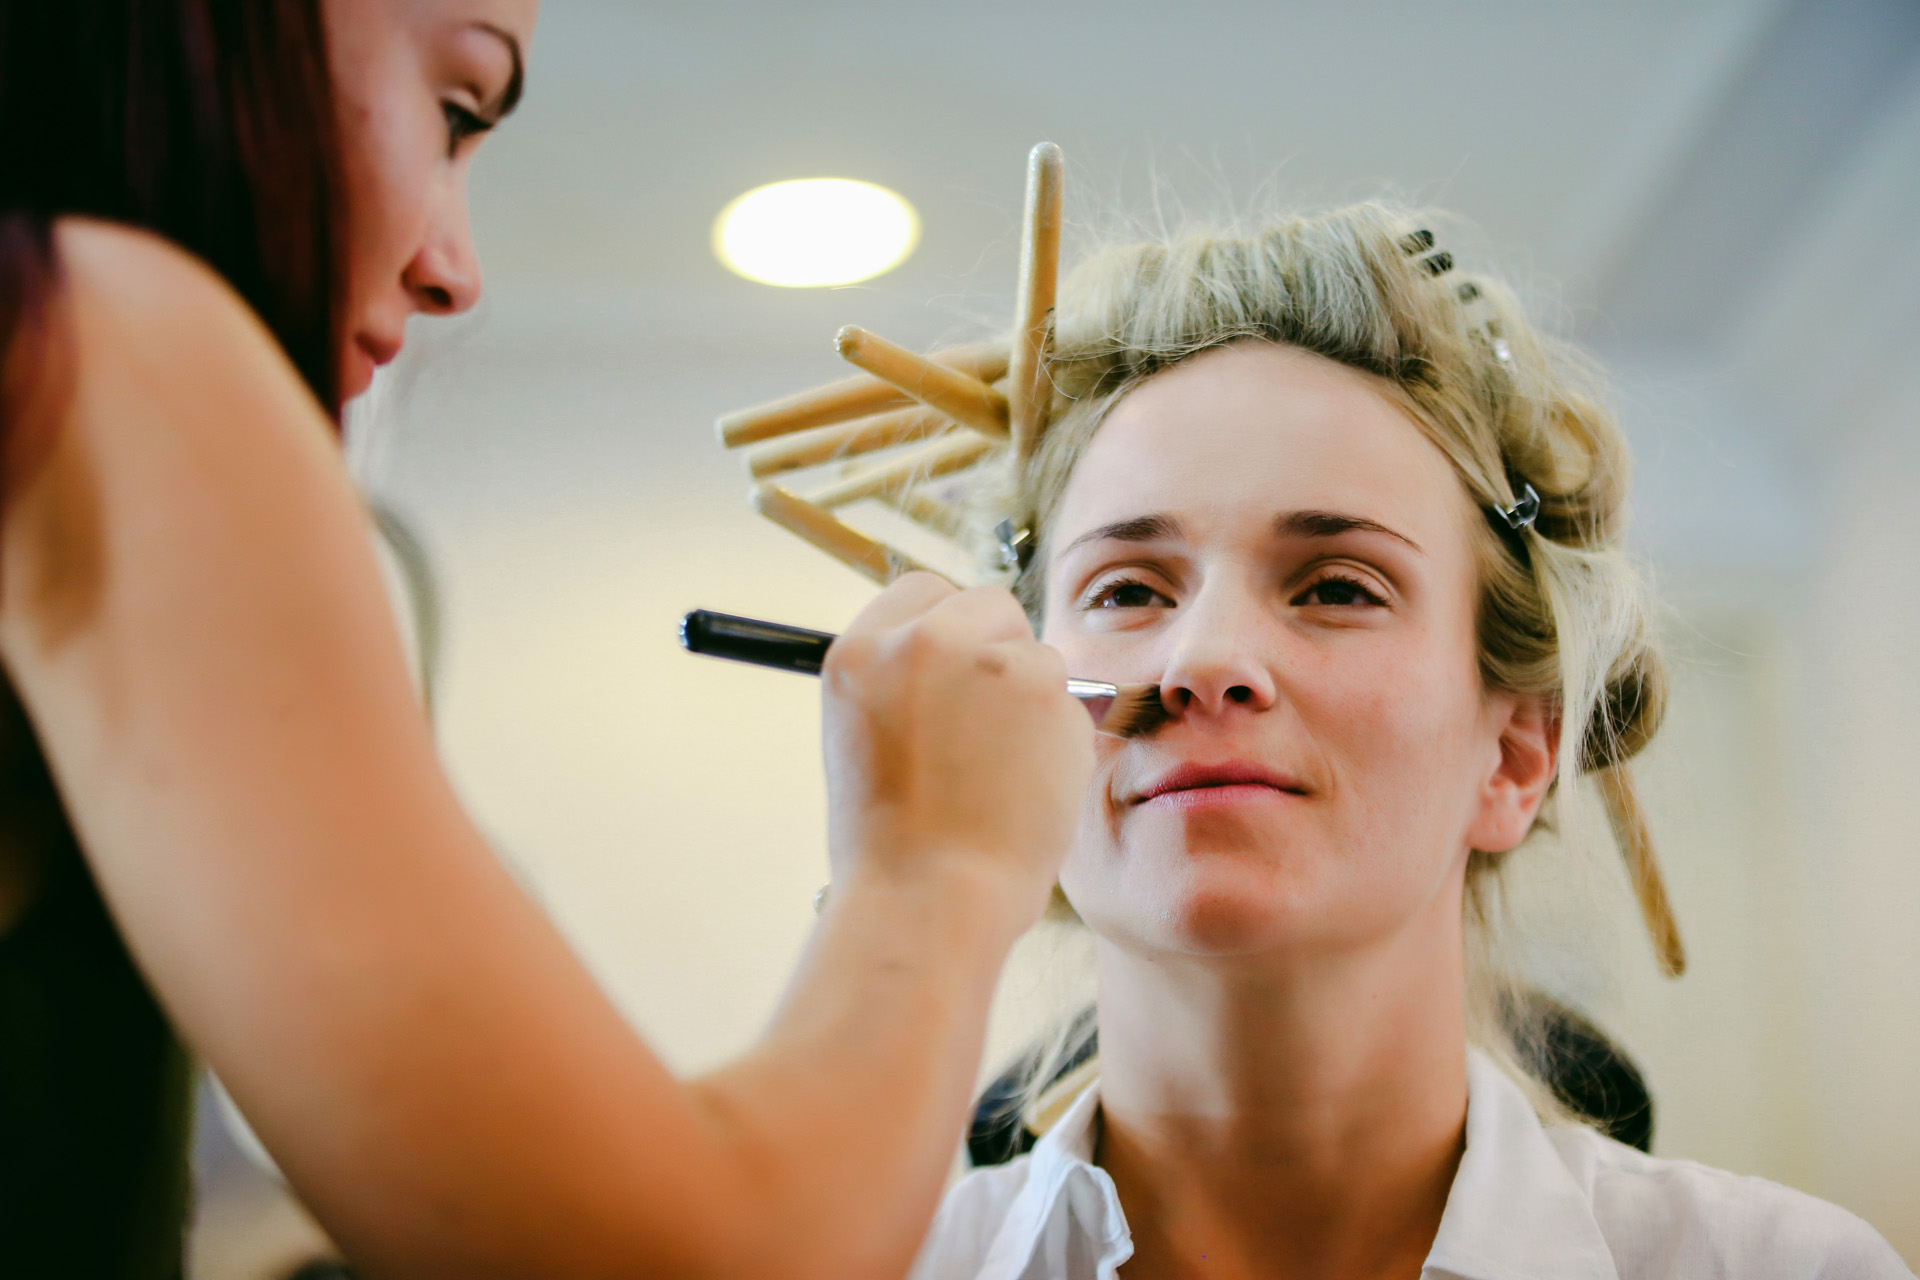 Sea Horse Beach Club, Turkey Bridal Elopement Image | The bride gets her hair and makeup done in a hair salon in Fethiye